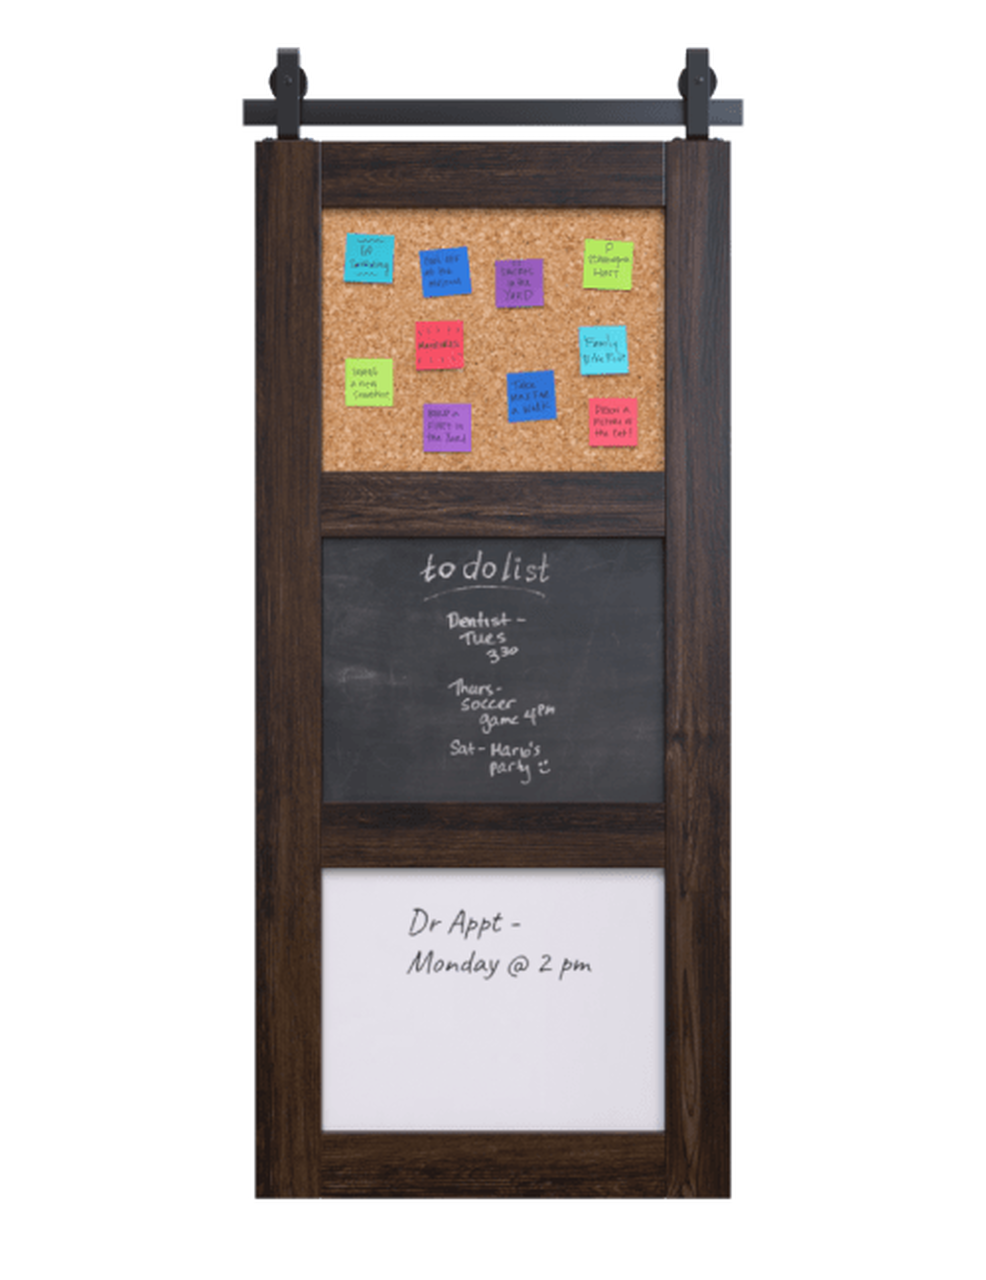 stained wood 3 panel barn door with chalkboard corkboard and whiteboard